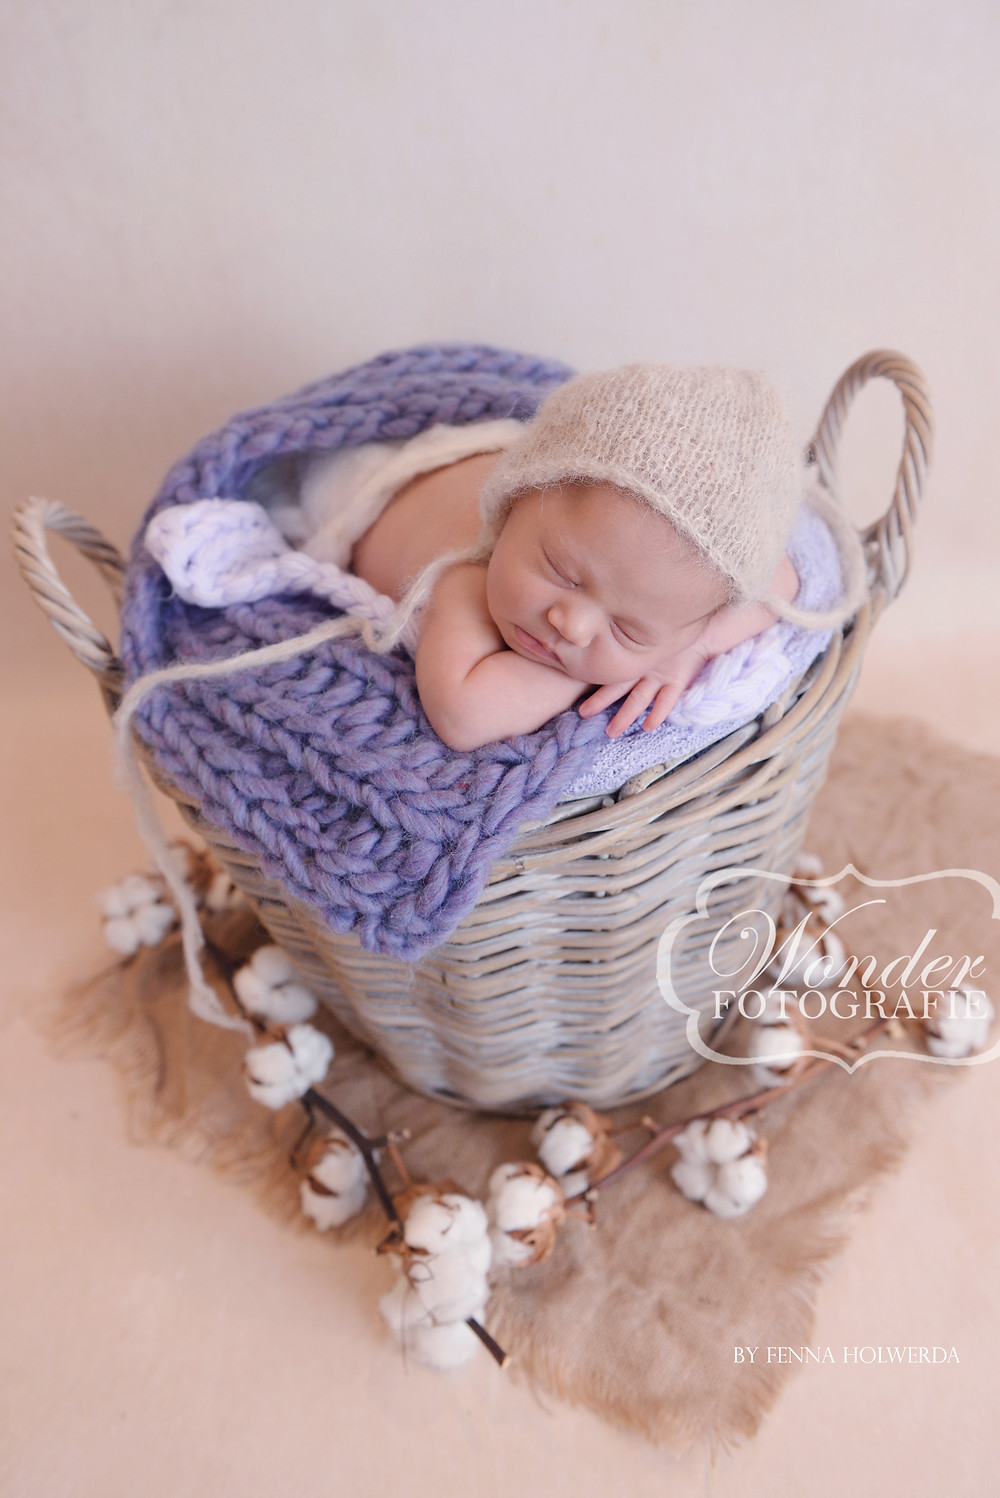 Best Newborn Photographer Beautiful Newborn Photoshoot Photography Babyfotoshoot Mooiste Newborn foto